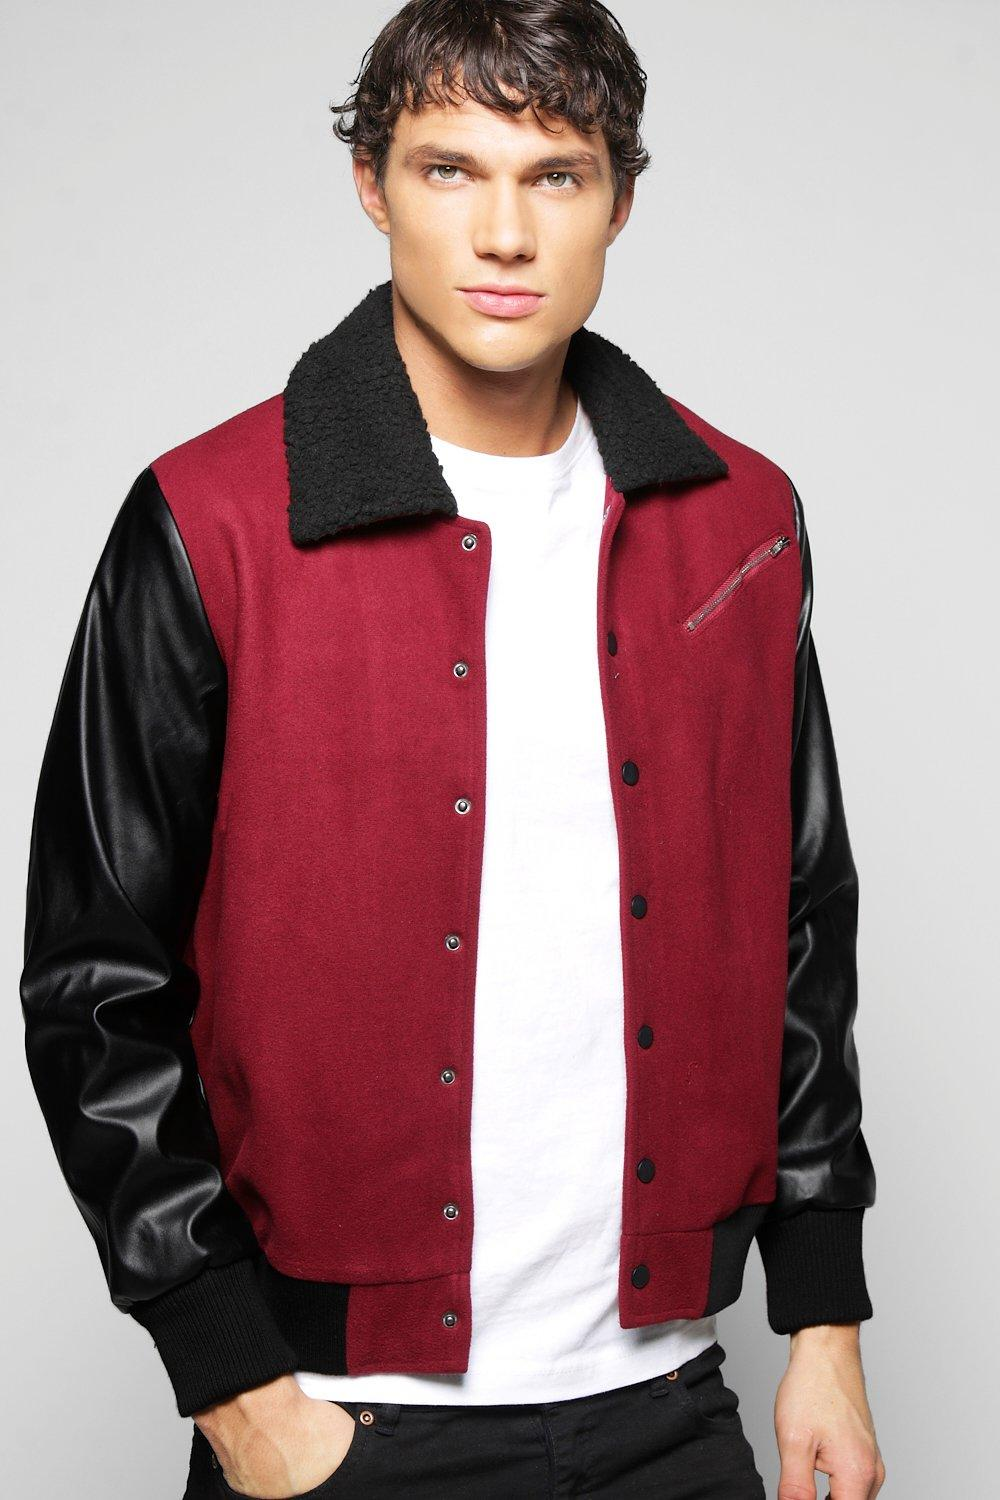 Men's Vintage Style Coats and Jackets Borg Collar Harrington With PU Sleeve wine $36.00 AT vintagedancer.com